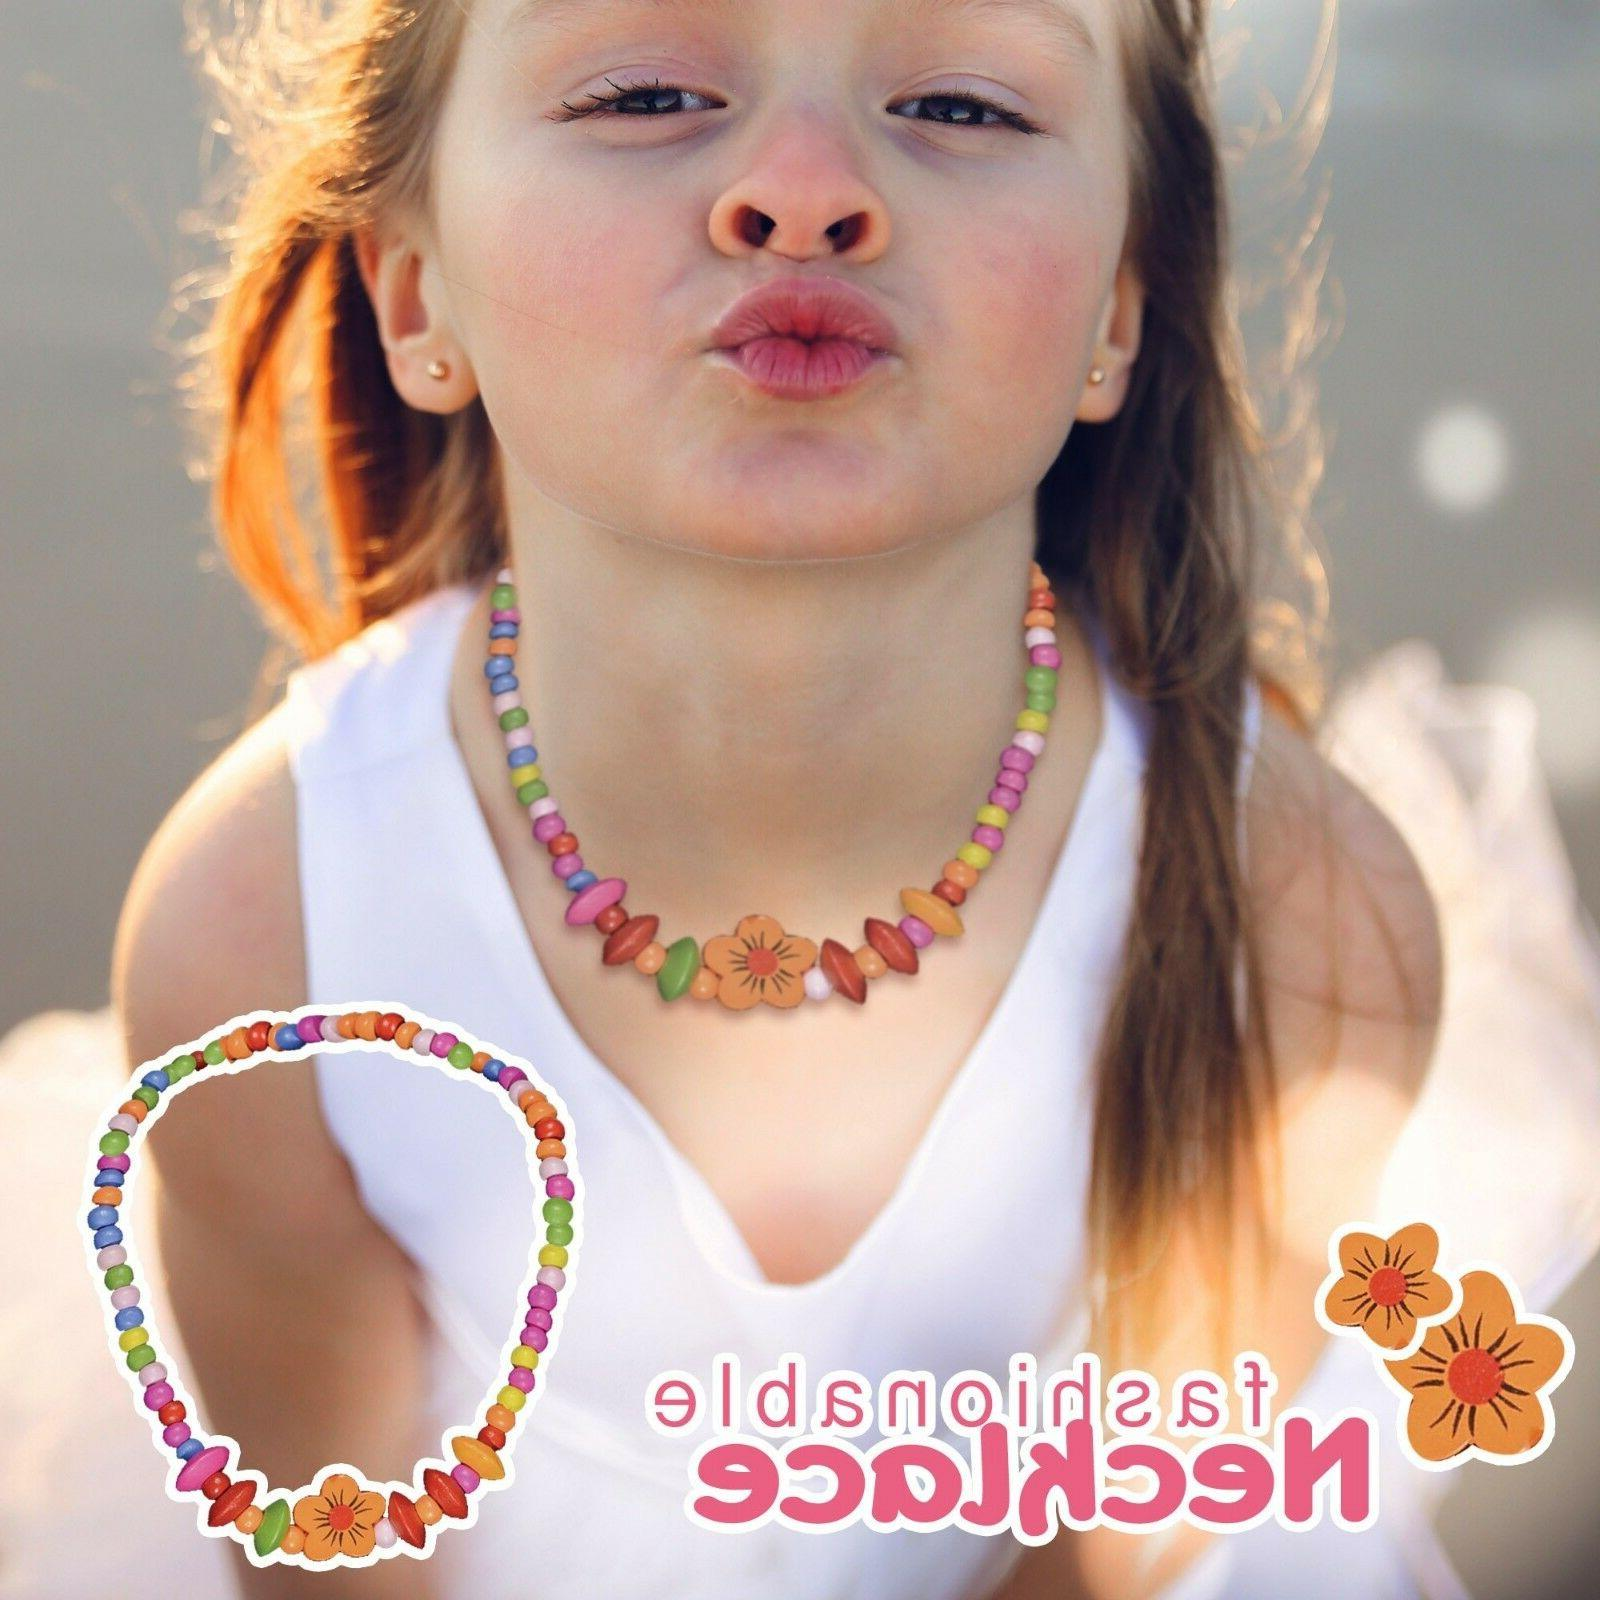 Toddler Play Jewelry Stretch Necklace, Bracelet Set for Little Girls